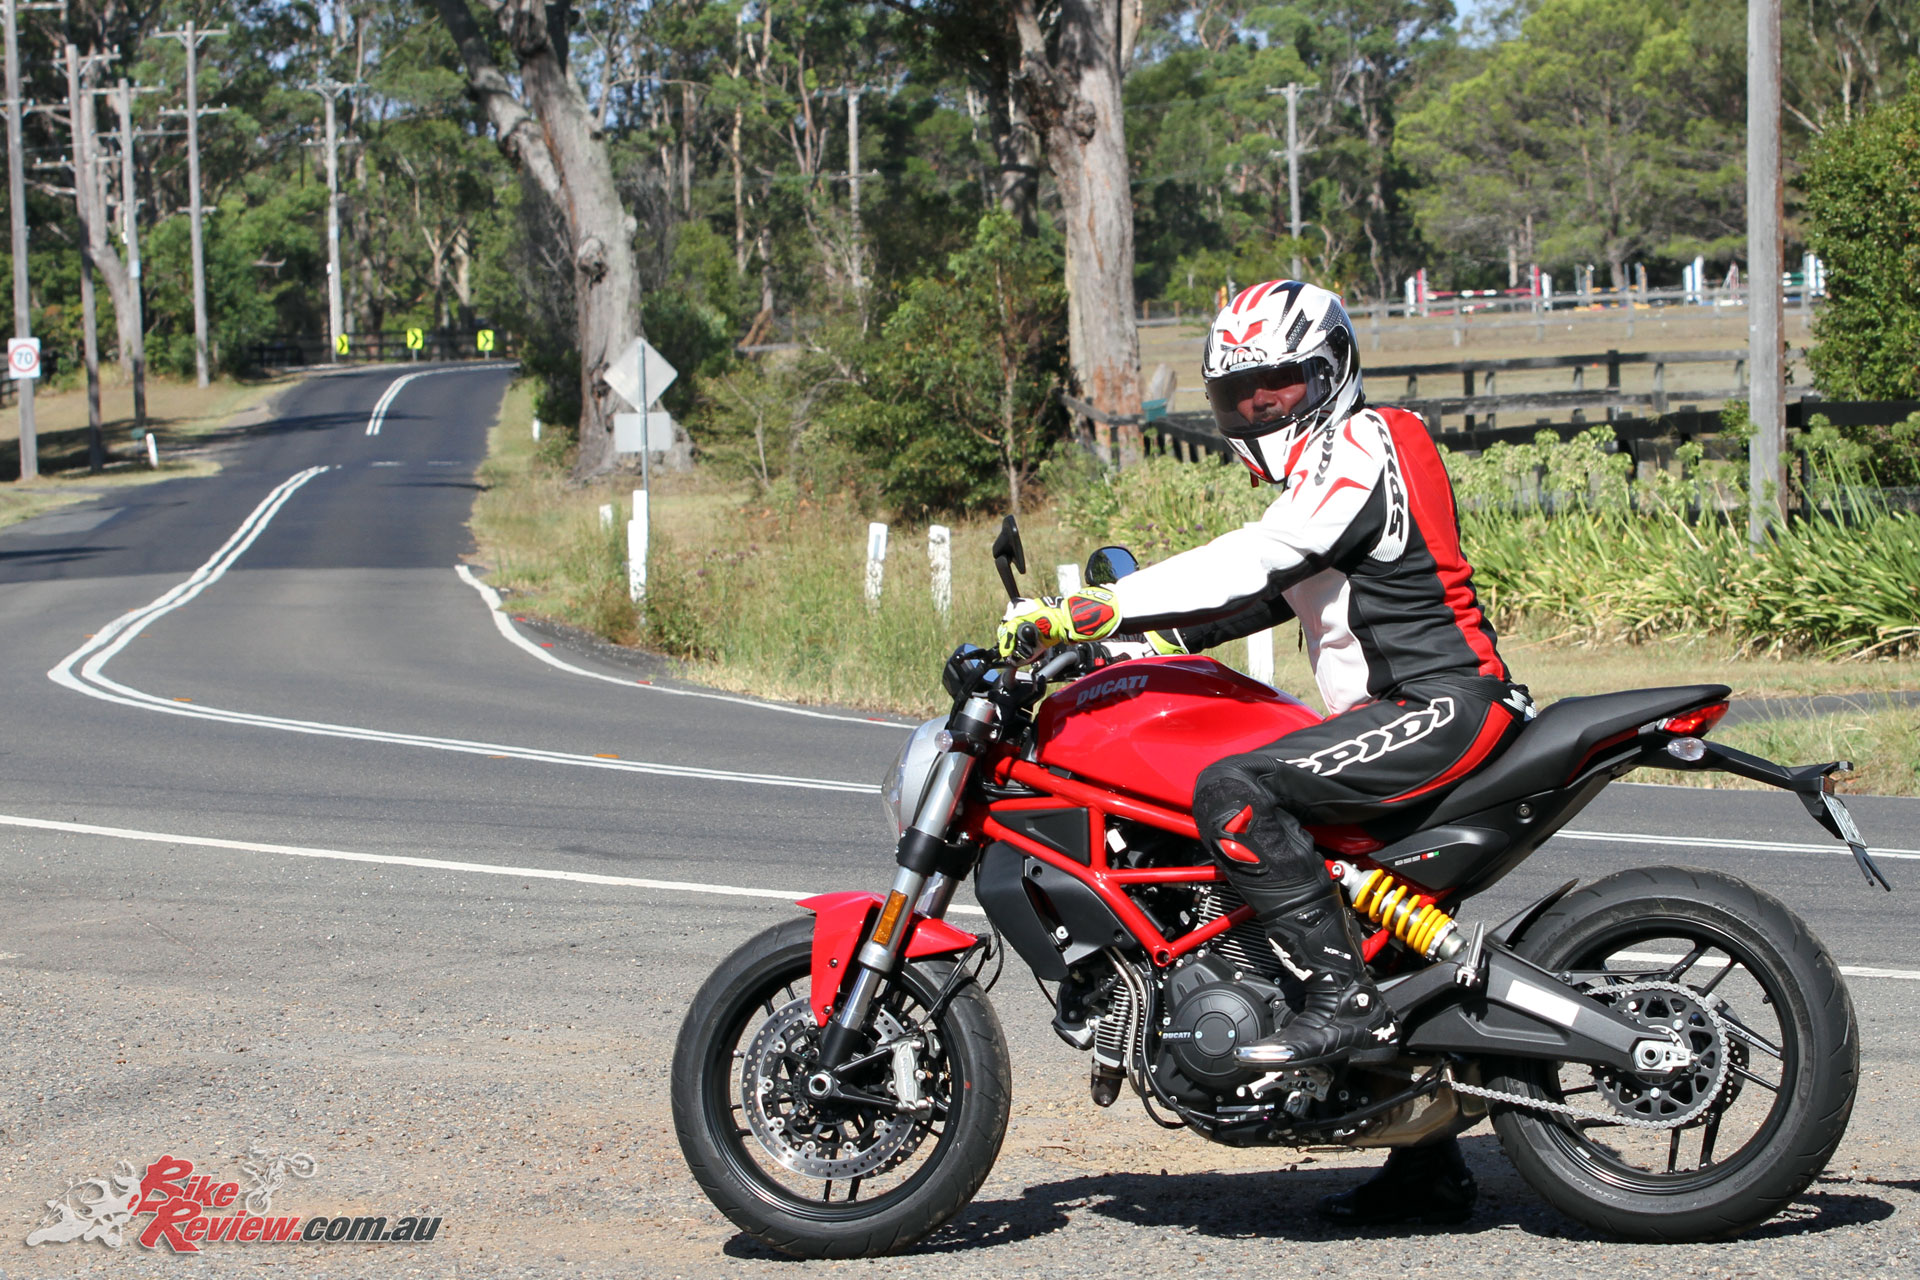 2018 Ducati Monster 659 LAMS – Bike Review